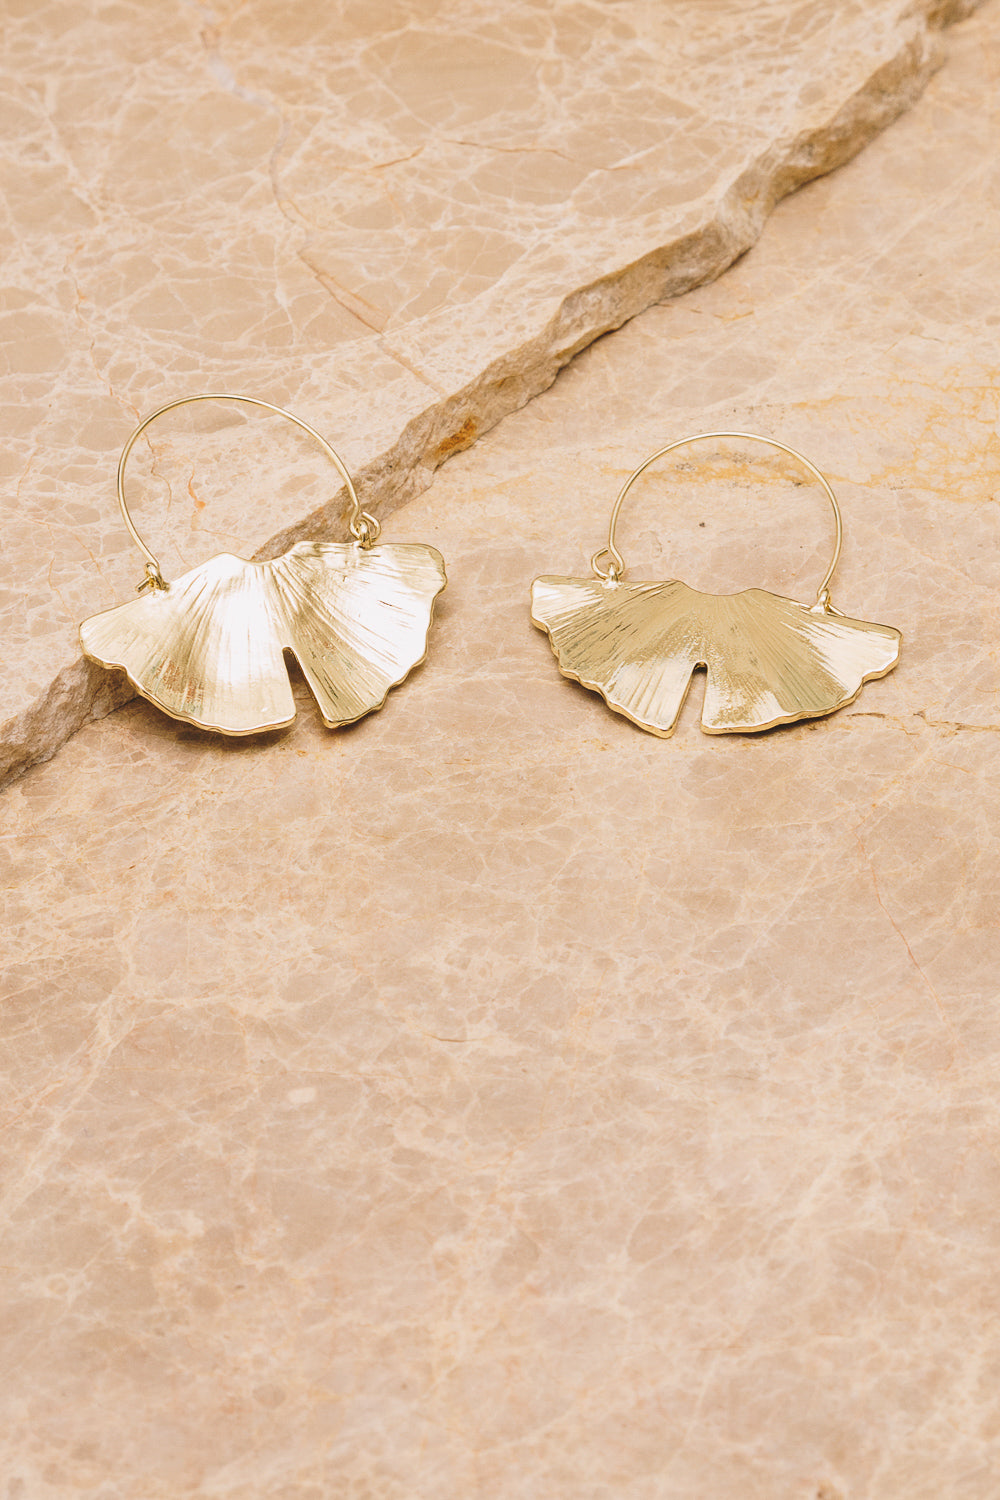 Gingko Hoop Earrings | 18k Gold Plating | Janna Conner